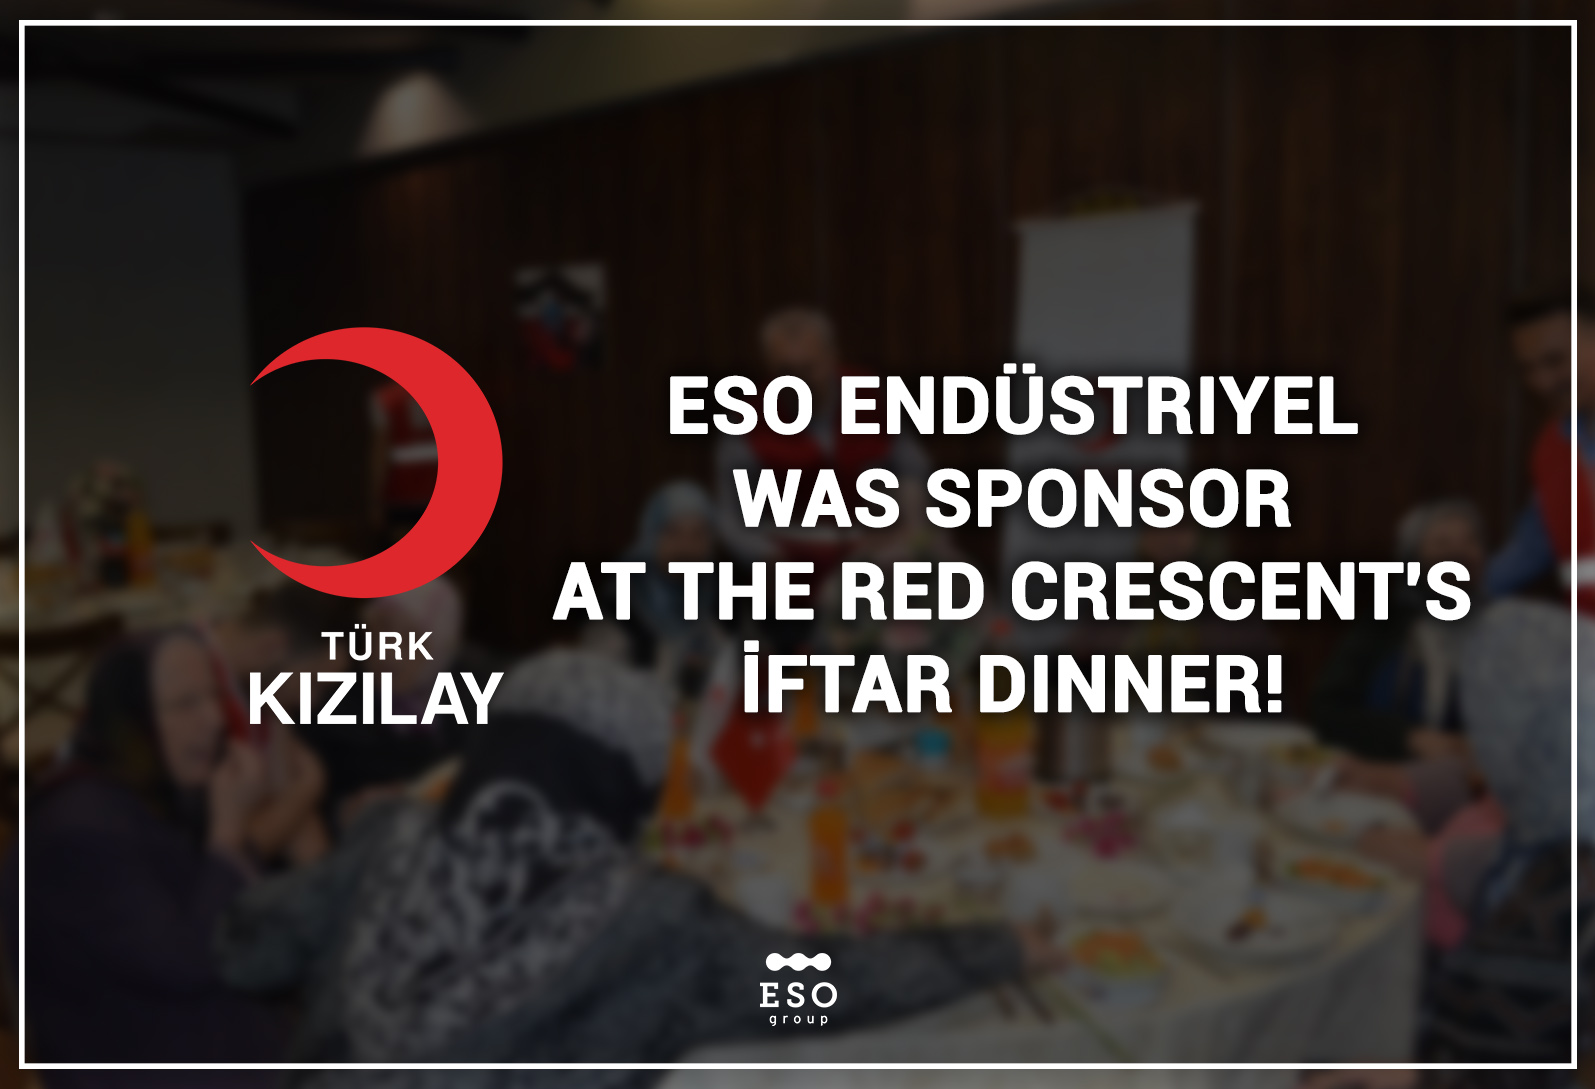 ESO Endüstriyel Otomasyon was Sponsor at the Red Crescent's İftar Dinner